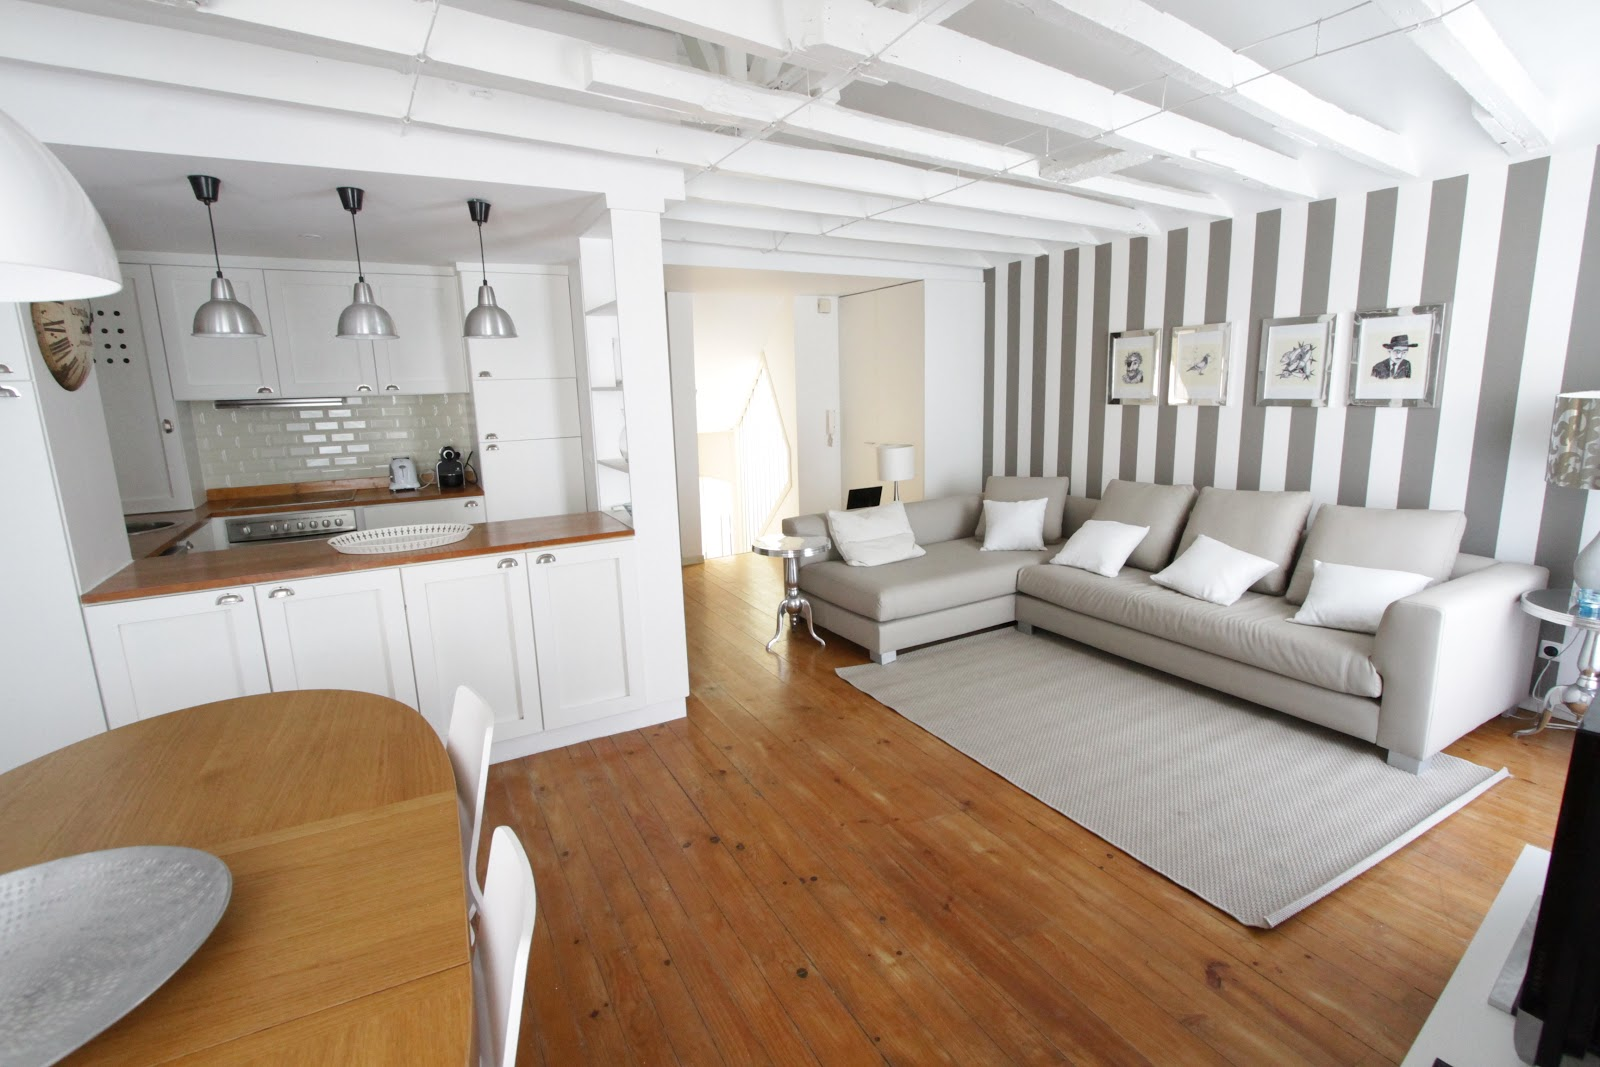 HomeStyling  Ana Antunes My house for rent in Lisbon  A minha casa para alugar